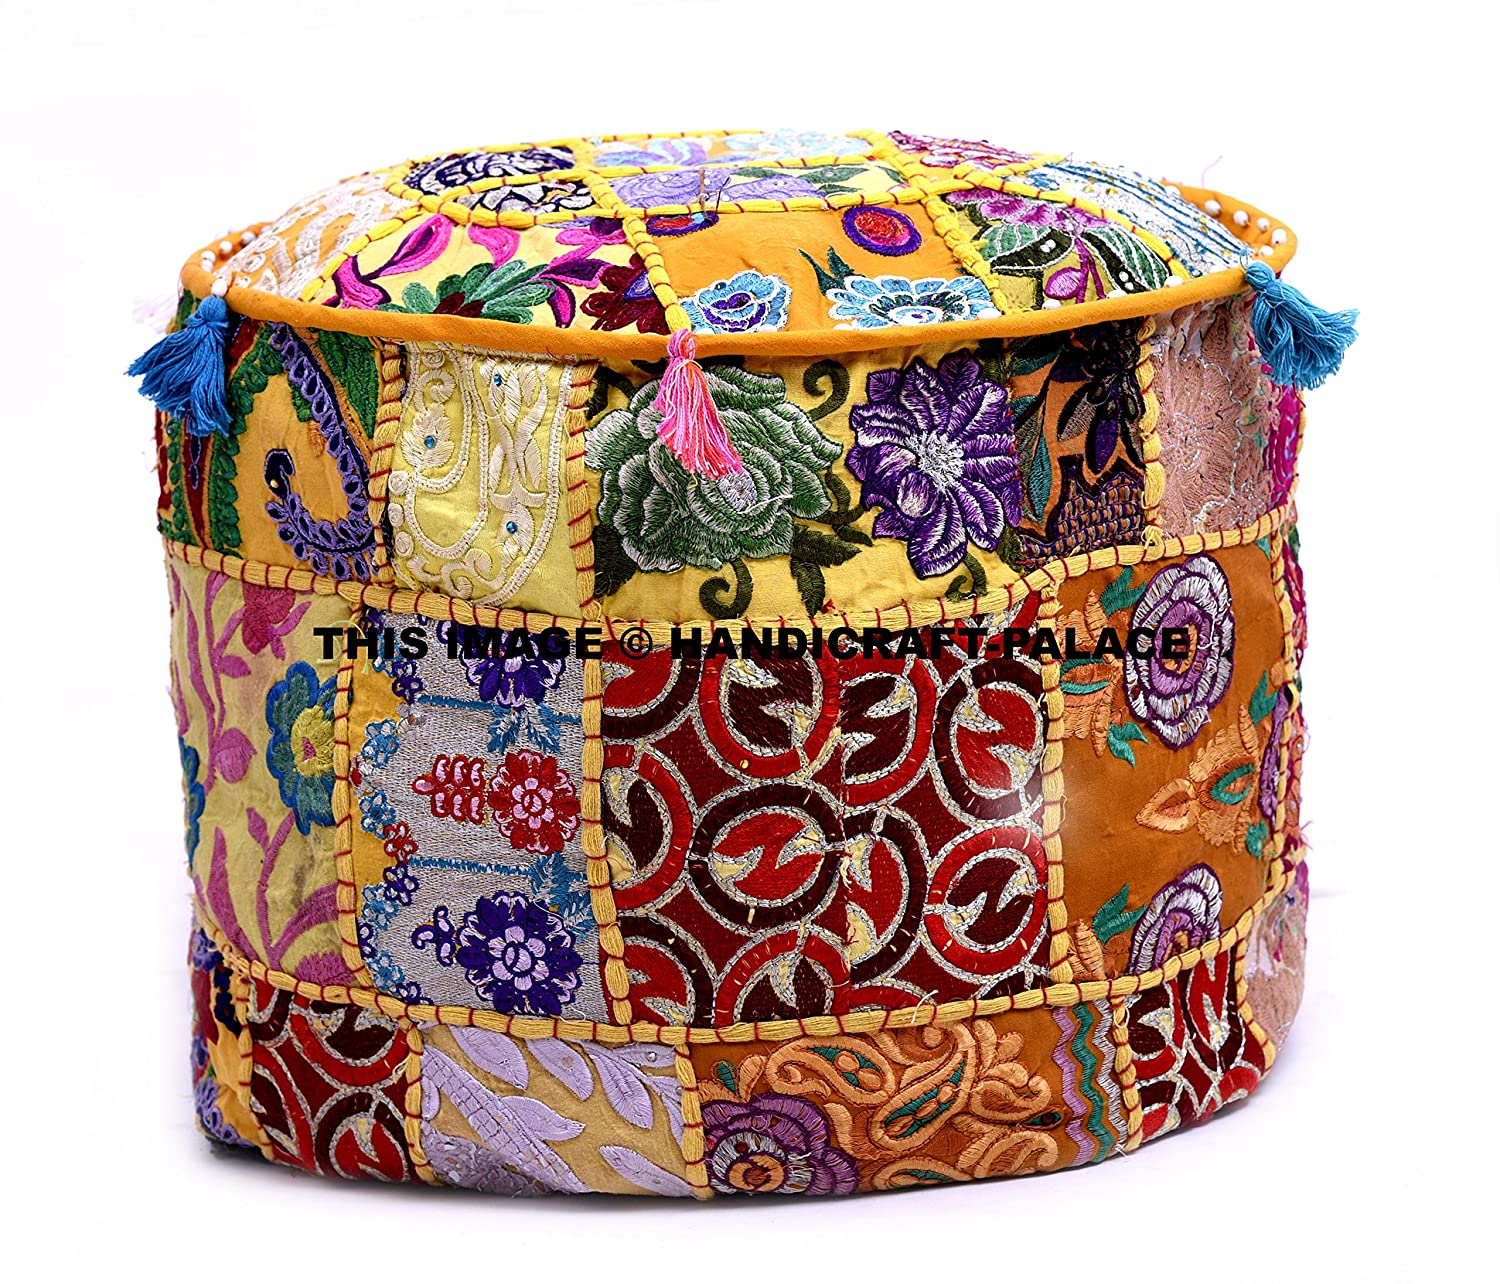 Beautiful Bohemian Patch Work Ottoman Cover,Traditional Vintage Indian Pouf Floor/Foot Stool, Christmas Decorative Chair Cover,100% Cotton Art Decor Cushion By Handicraft-Palace POSS-3